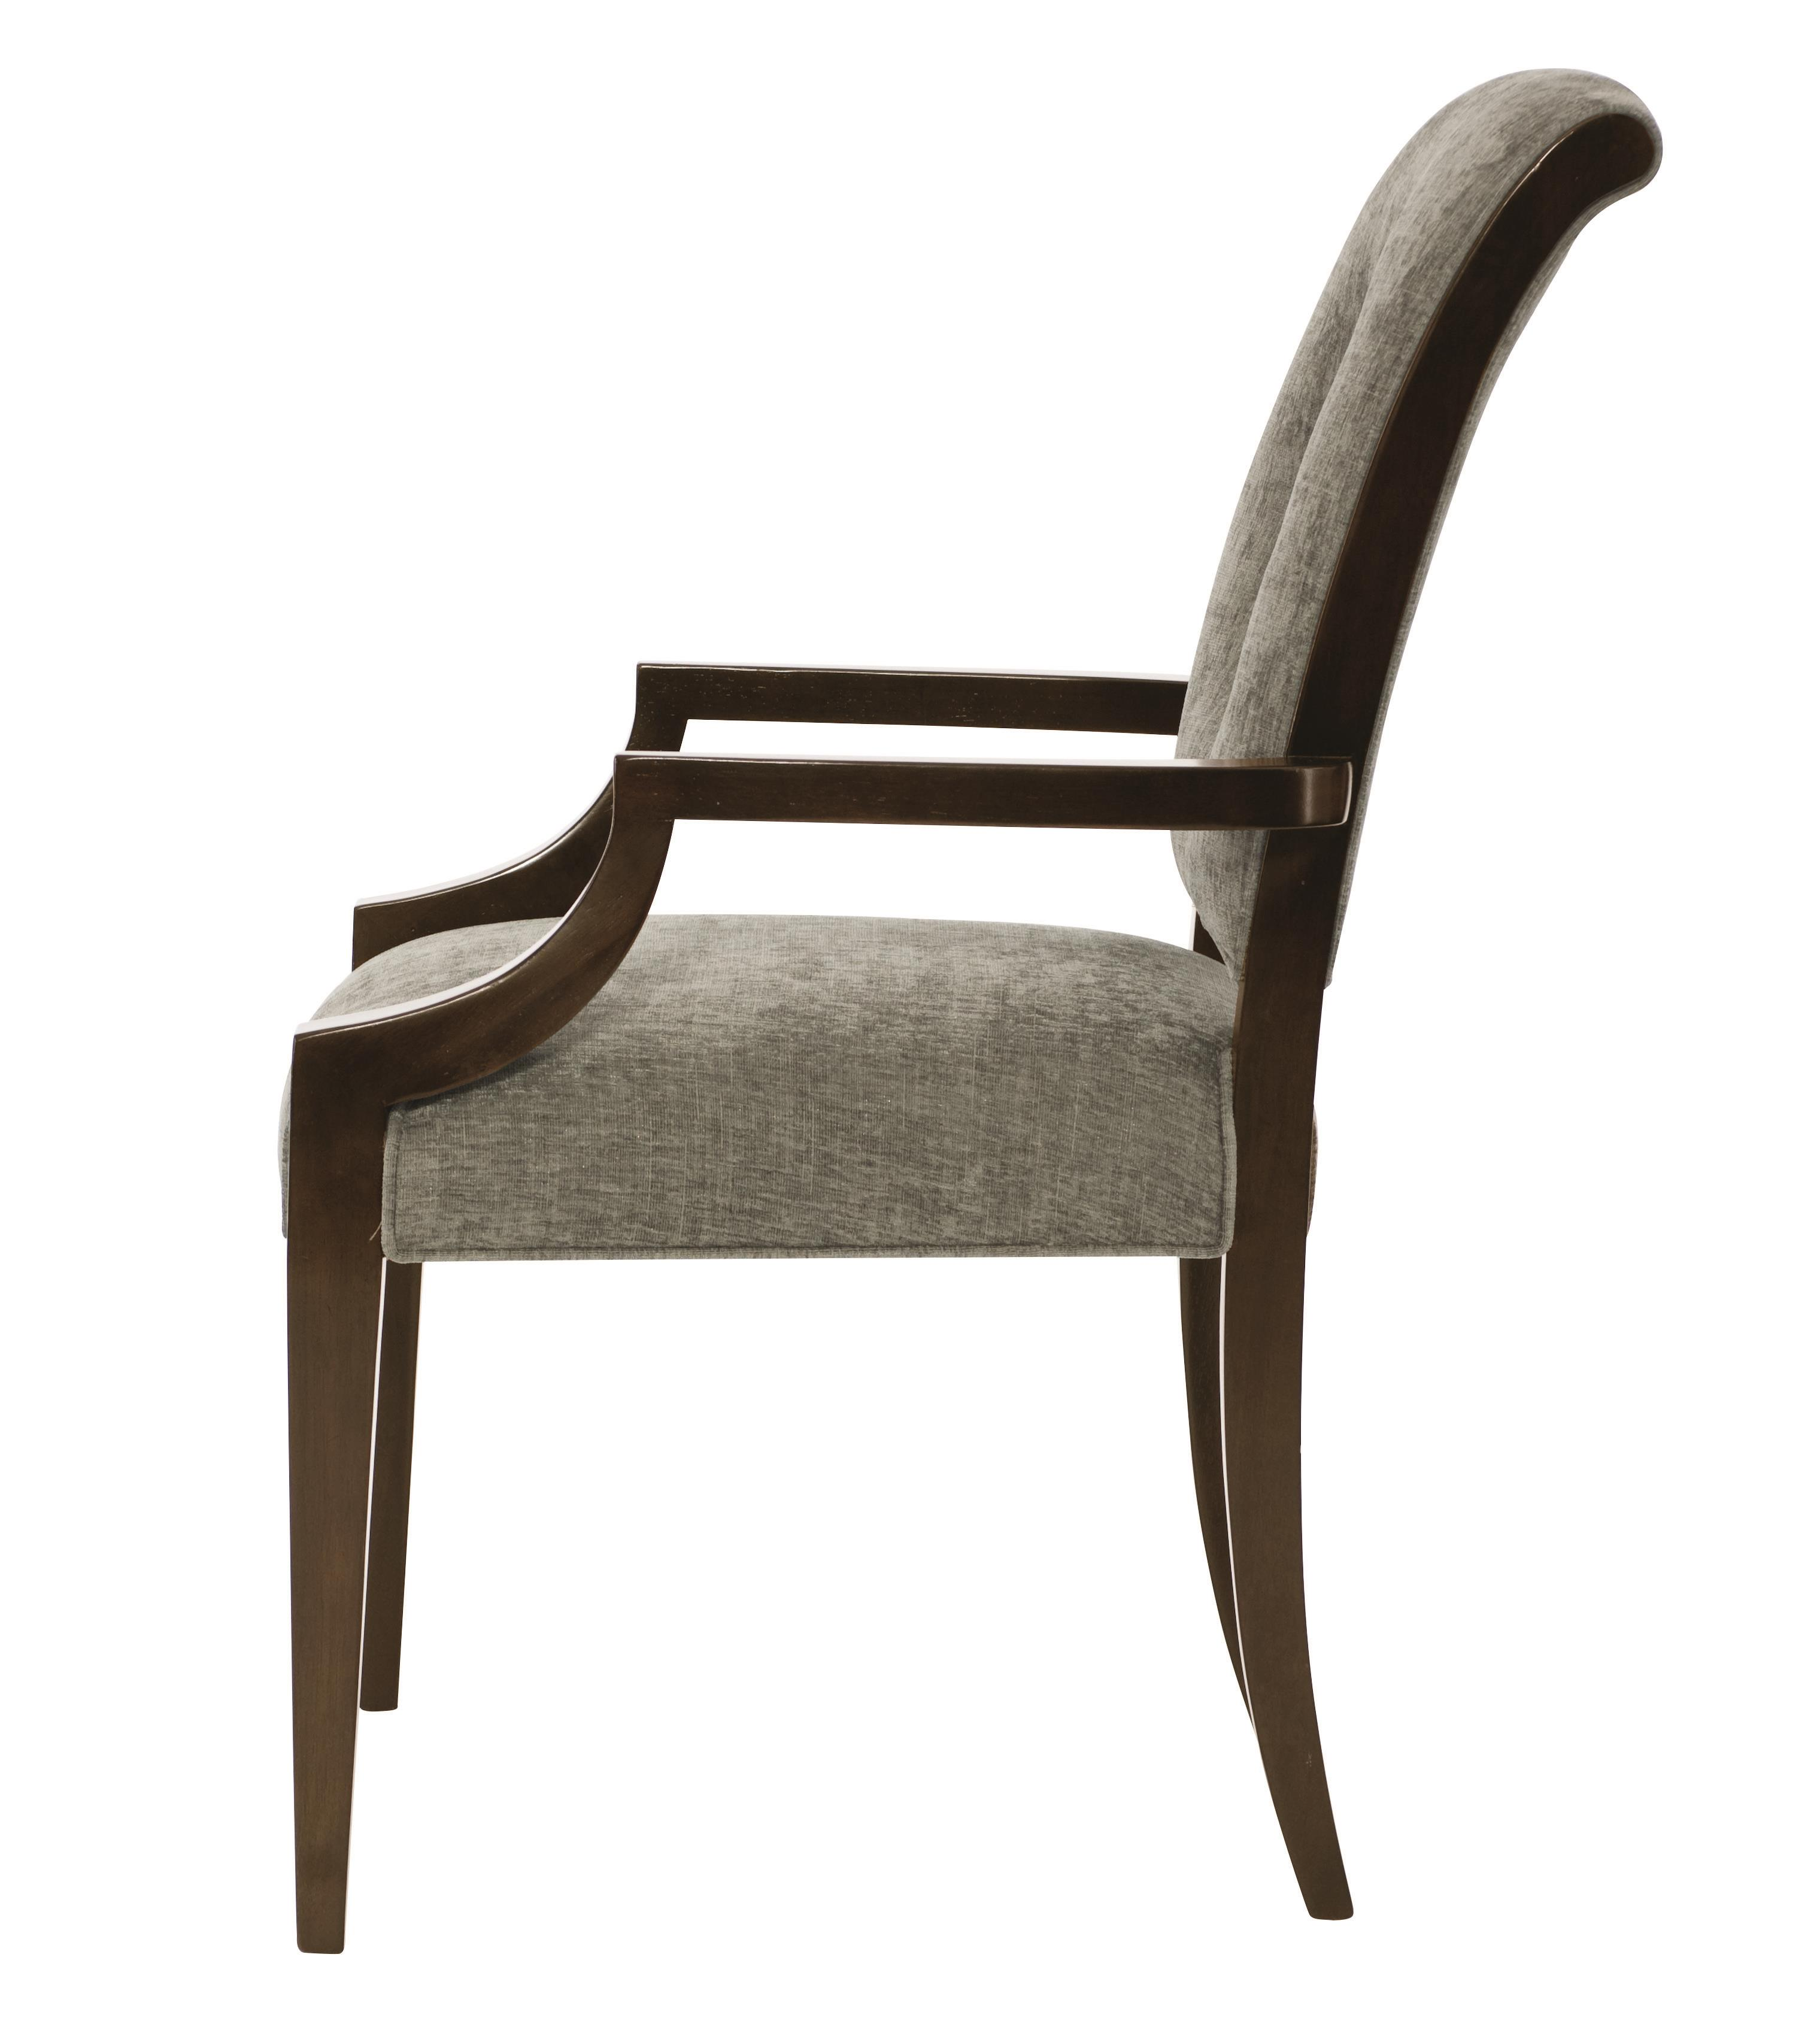 Bernhardt Miramont 360 566 Upholstered Dining Arm Chair